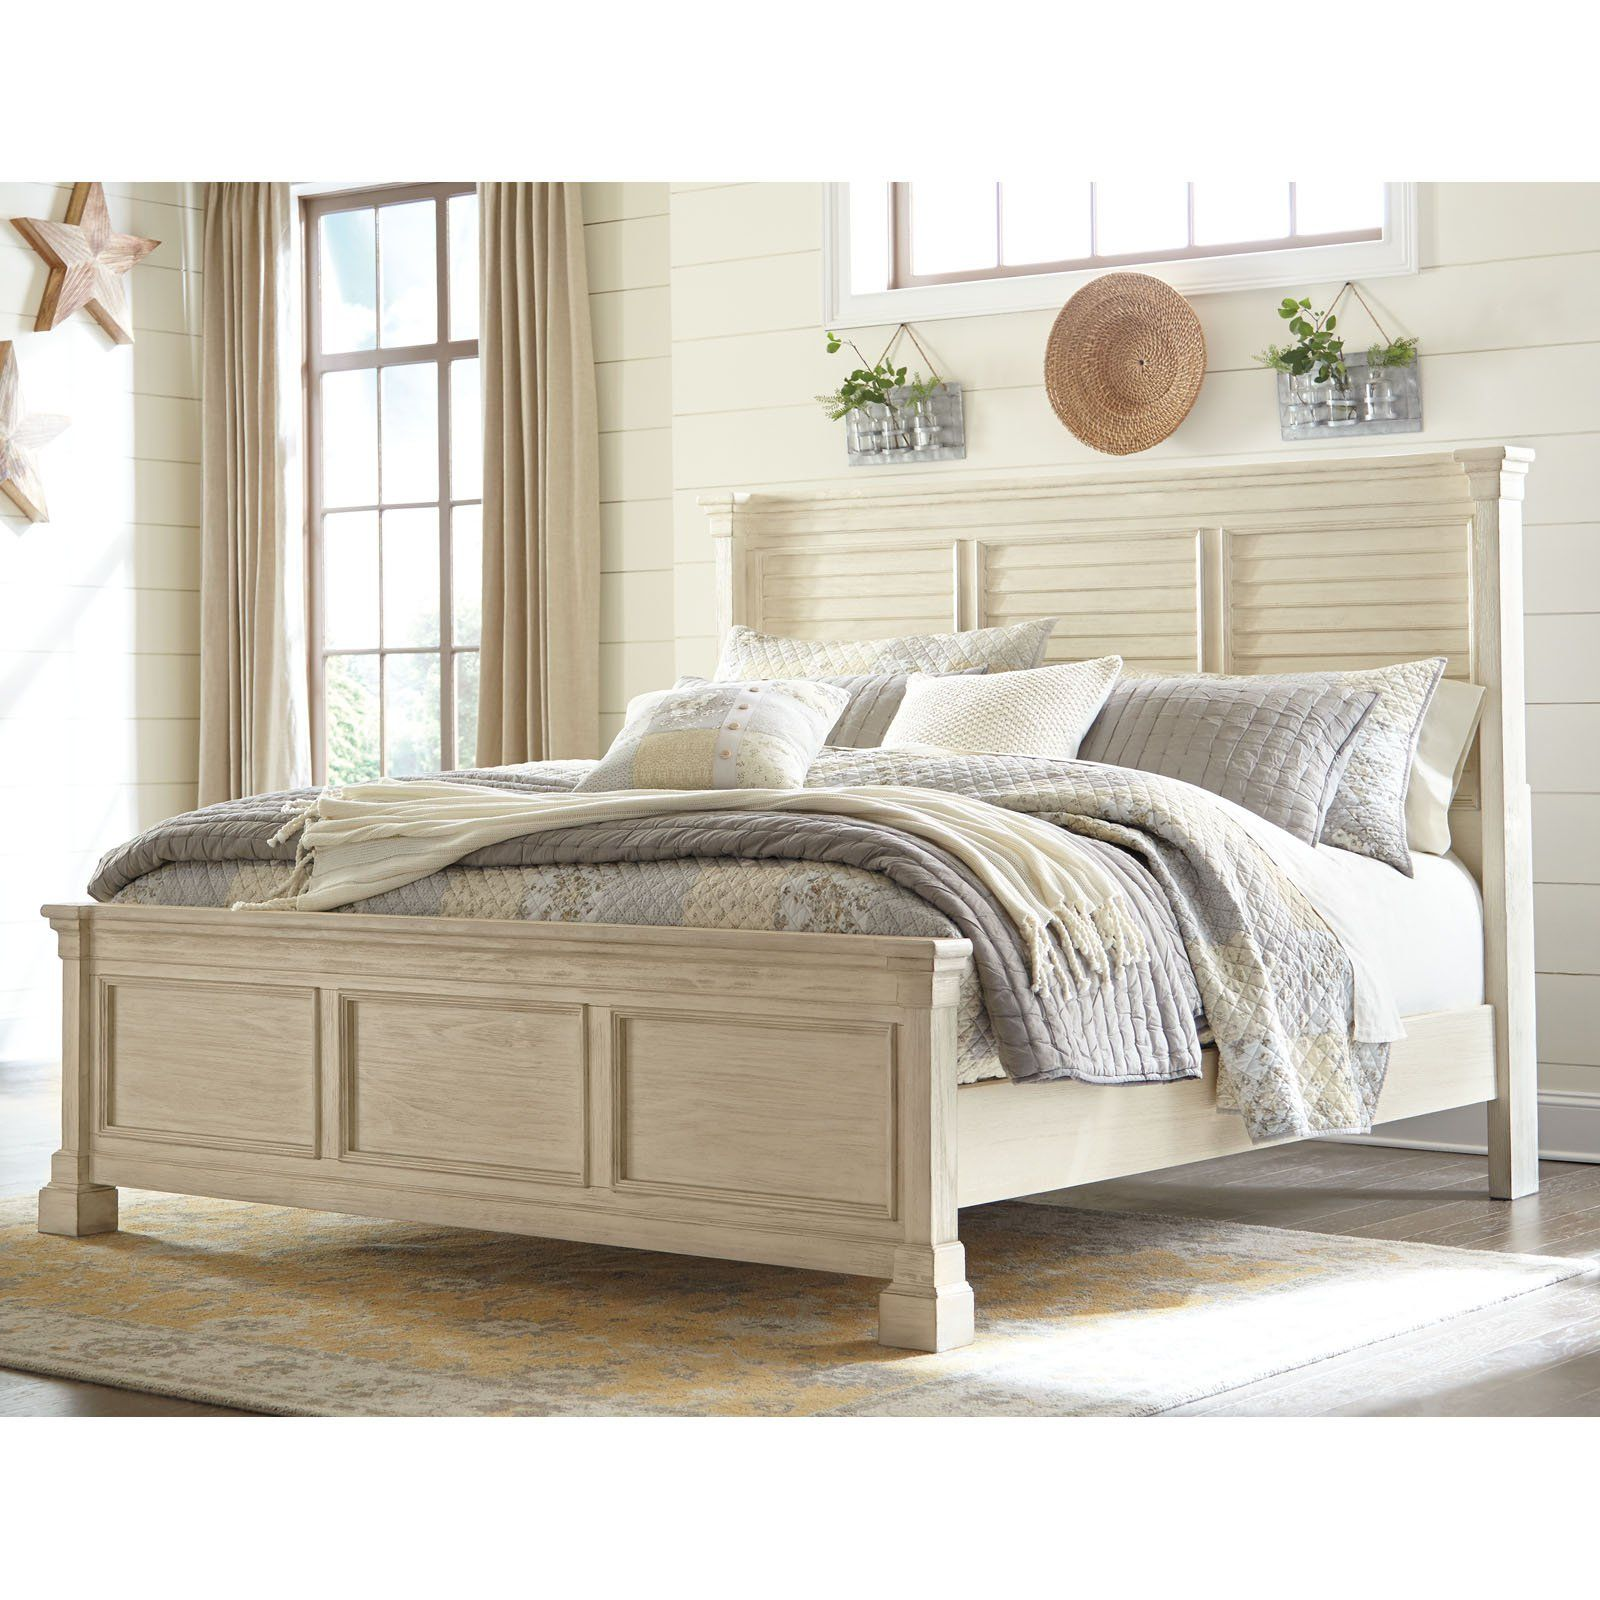 Best Signature Design By Ashley Bolanburg Louvered Panel Bed 400 x 300